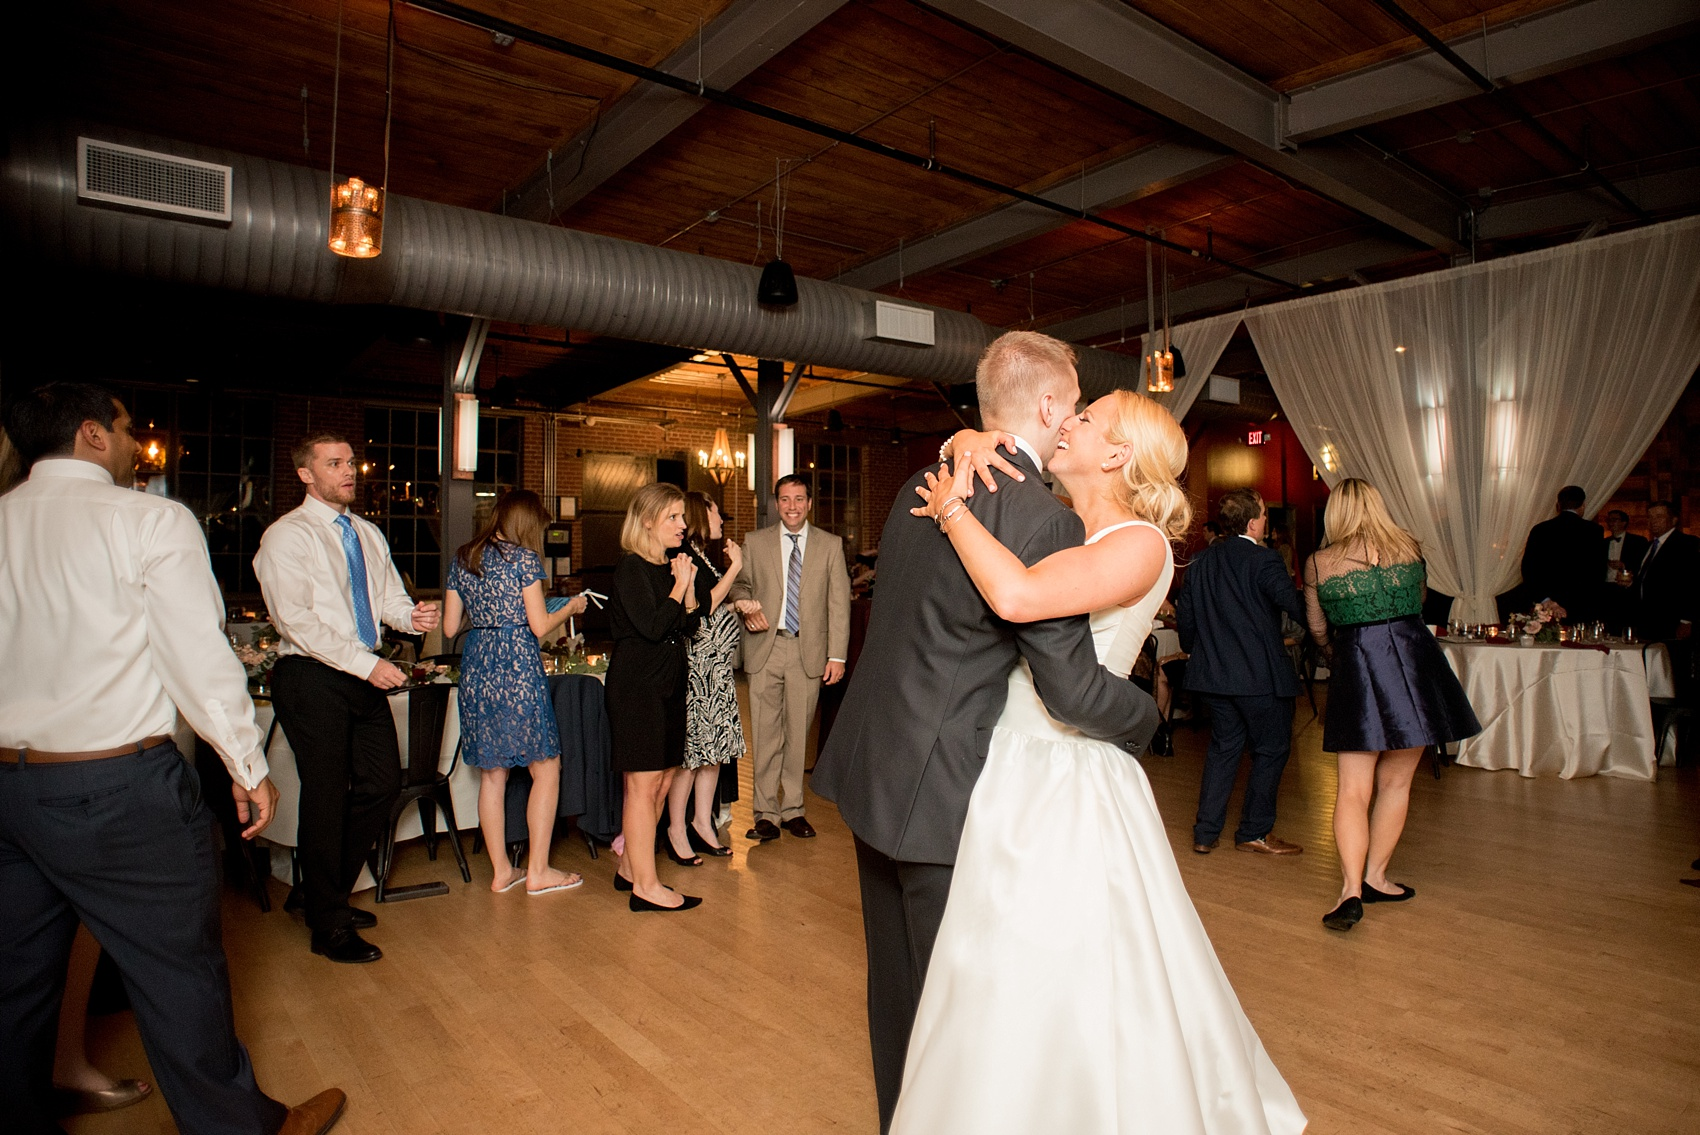 Mikkel Paige Photography photo of a wedding at The Rickhouse, NC. A picture of bride and groom dancing during their reception.